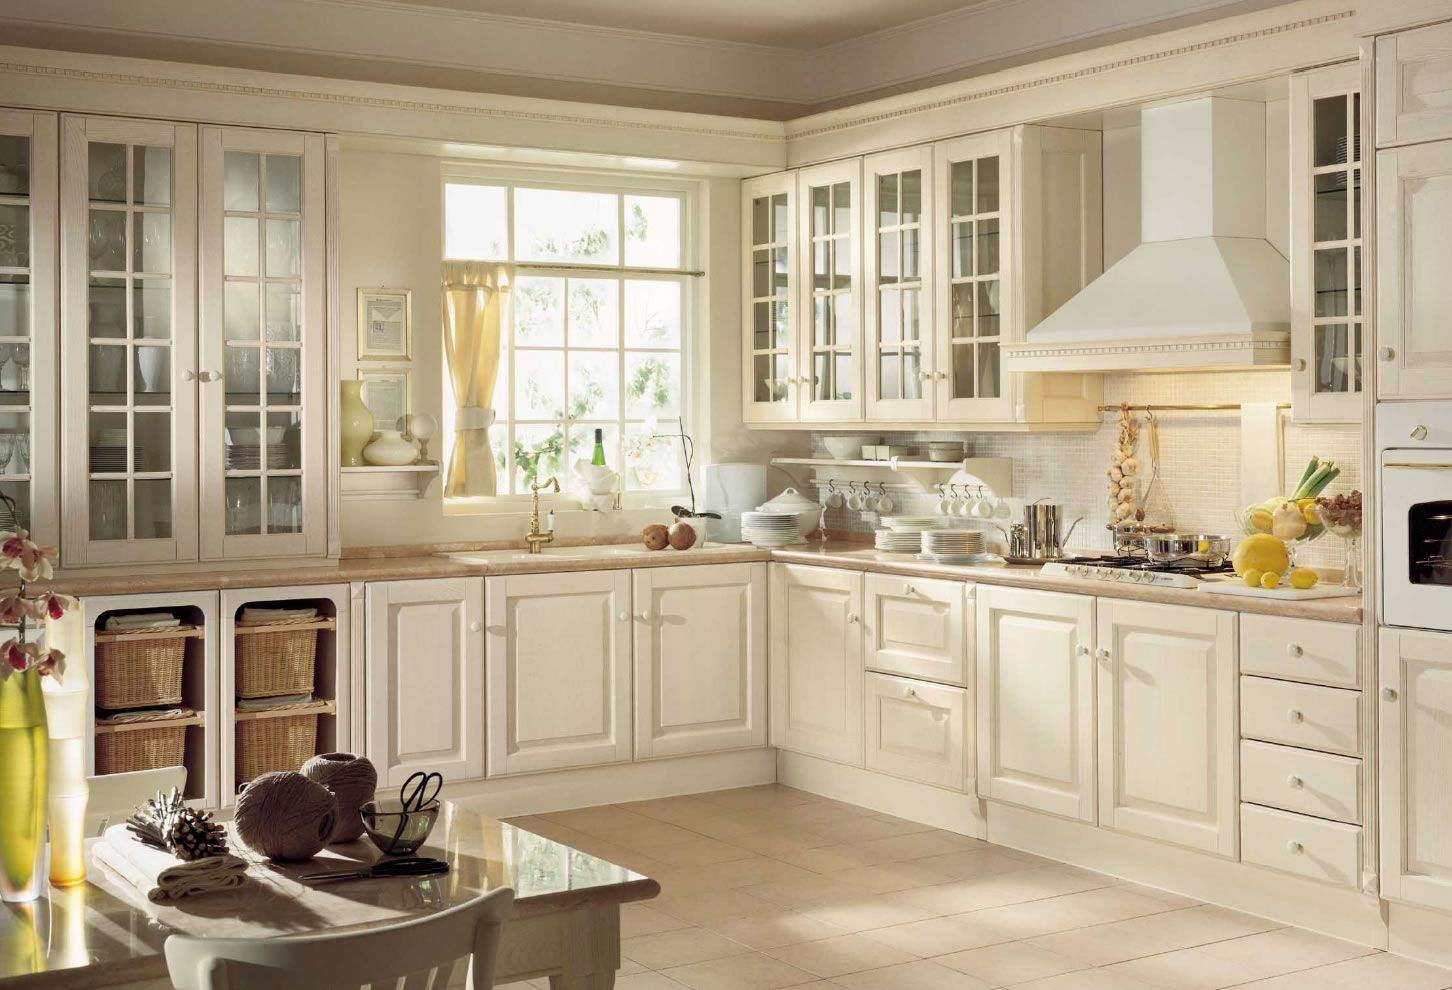 Cuisine traditionnelle - Scavolini cucine | Home sweet home ...